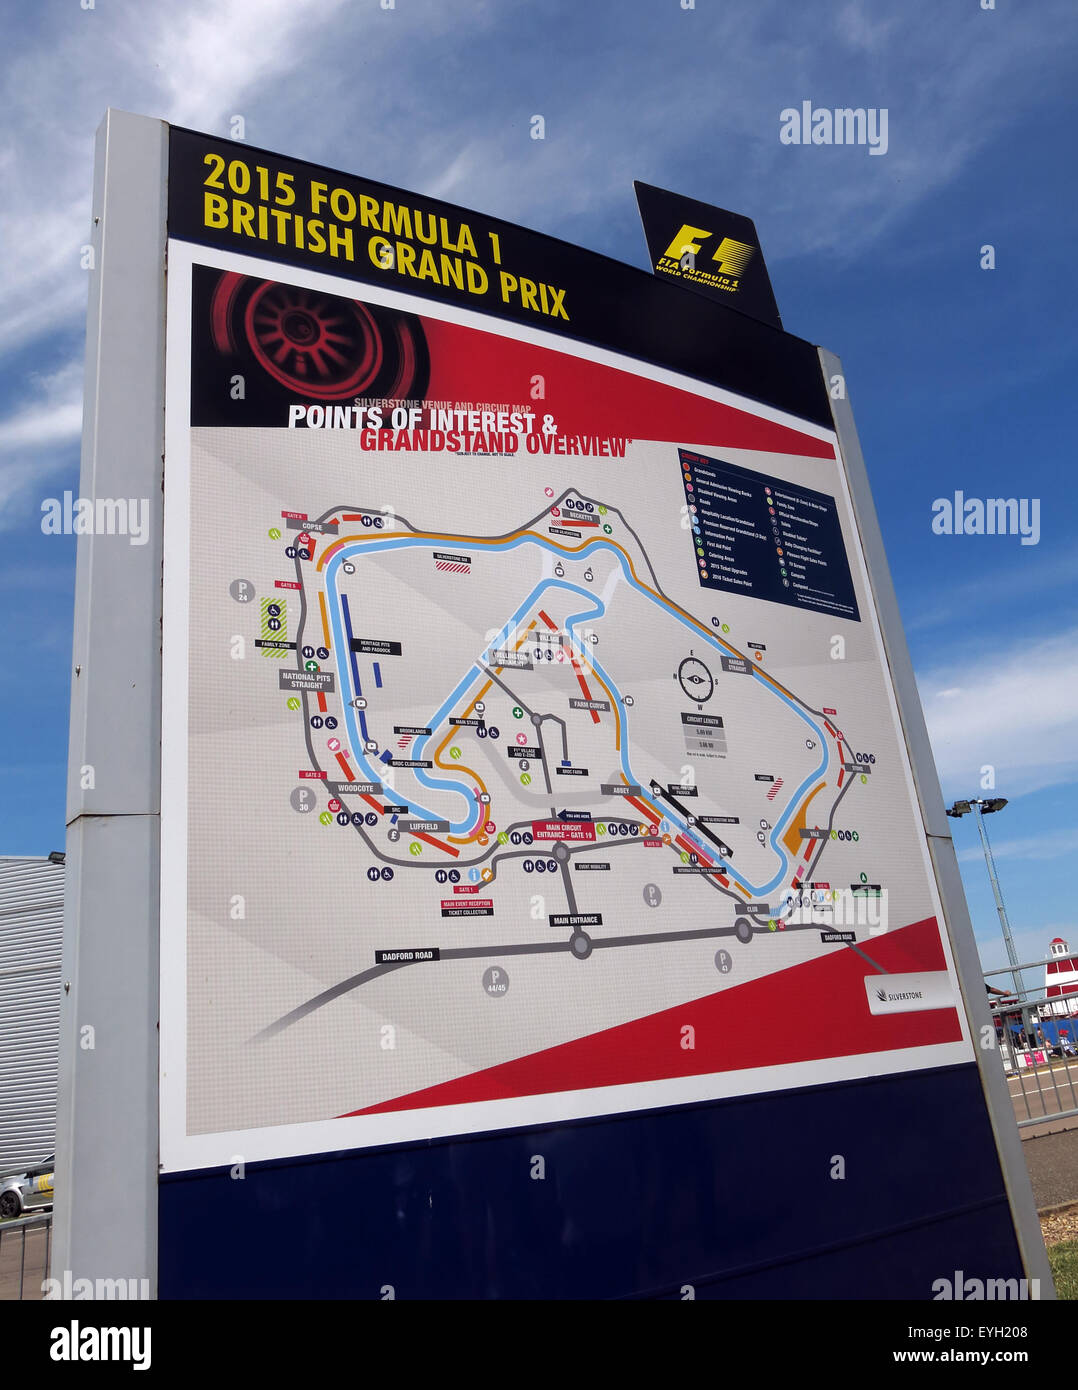 Formula,One,Great,Britain,sport,motor,motorsport,summer,car,cars,crowd,fans,racing,race,sun,Map,of,the,Circuit,signage,diagram,schematic,points,of,interest,paddock,pits,stands,retro,route,track,Circuit map,2015formula 1,Formula1,Points of interest,GoTonySmith,Buy Pictures of,Buy Images Of